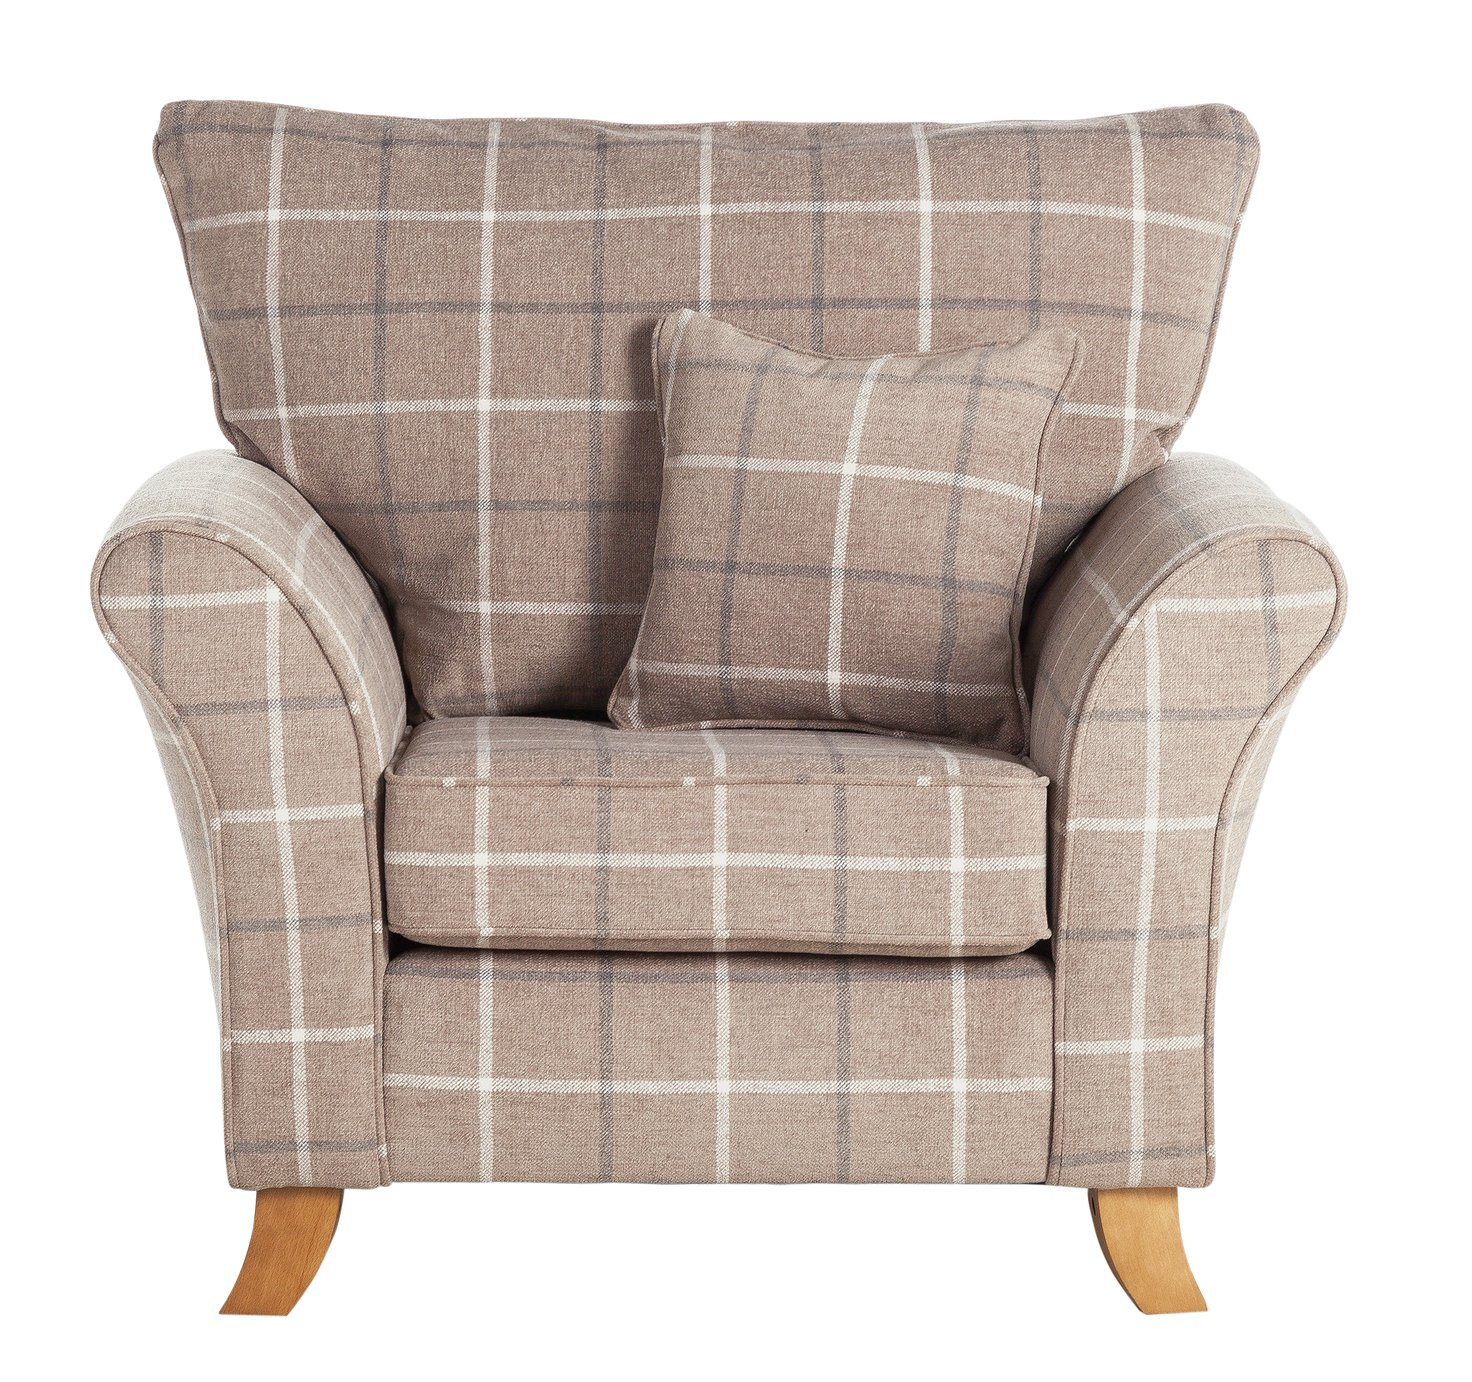 Argos Home Kayla Windowpane Fabric Armchair - Beige